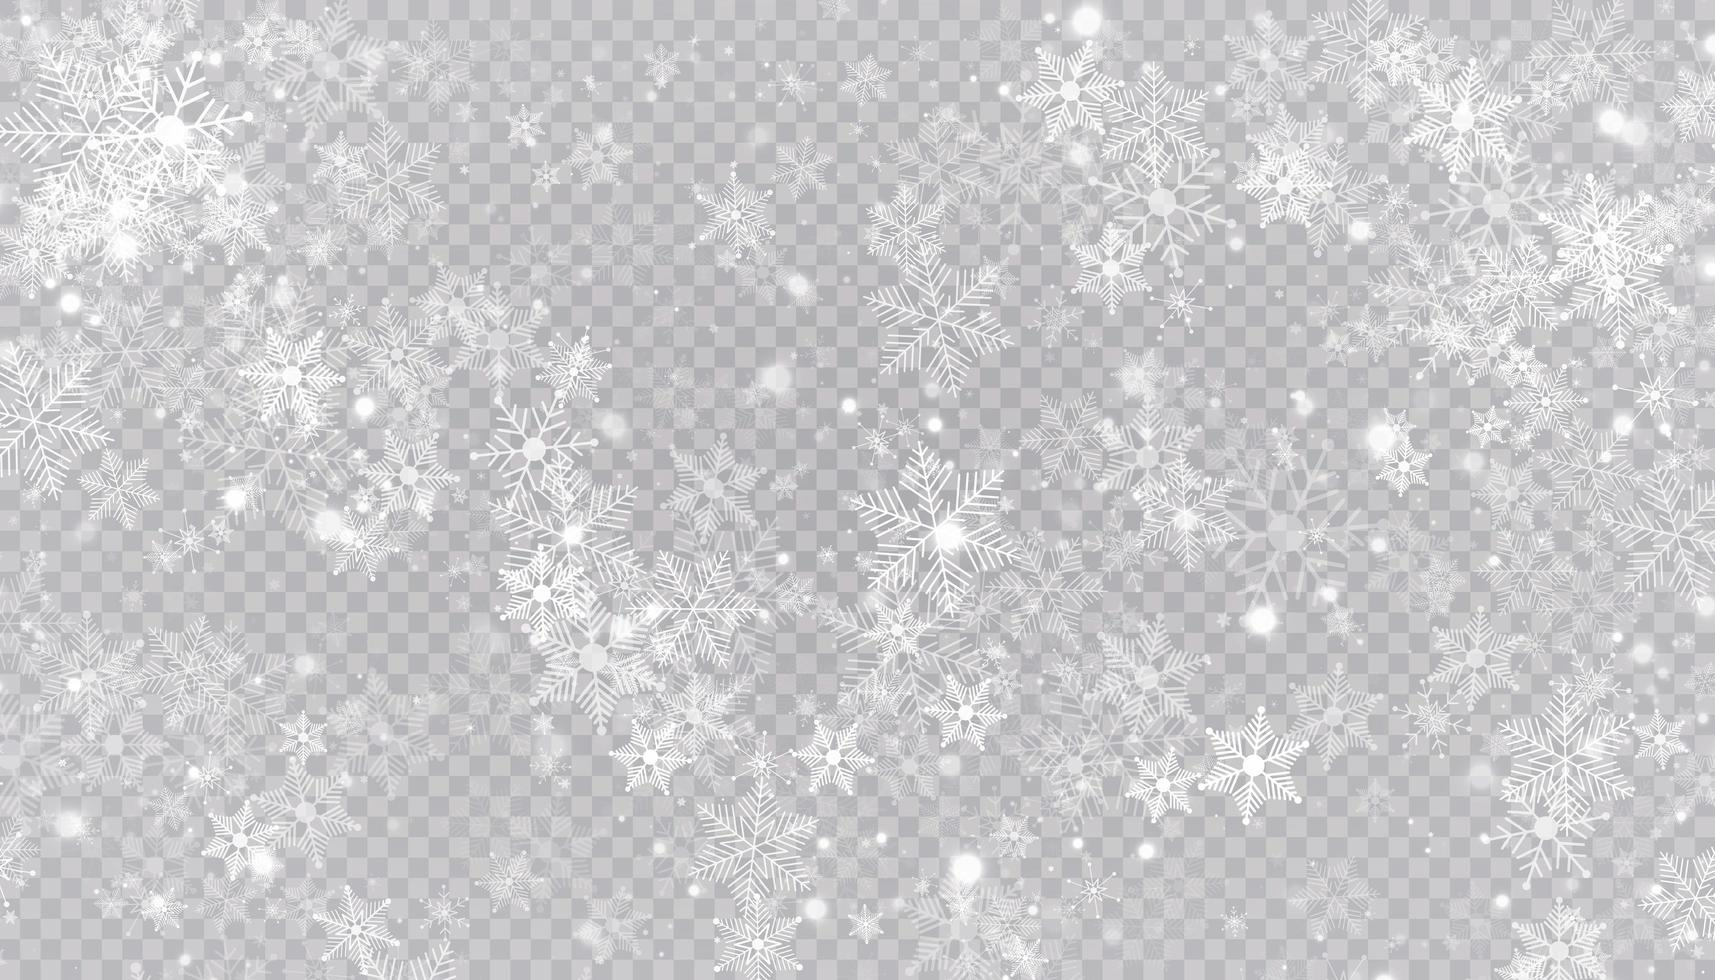 White snow flakes on a transparent background. vector